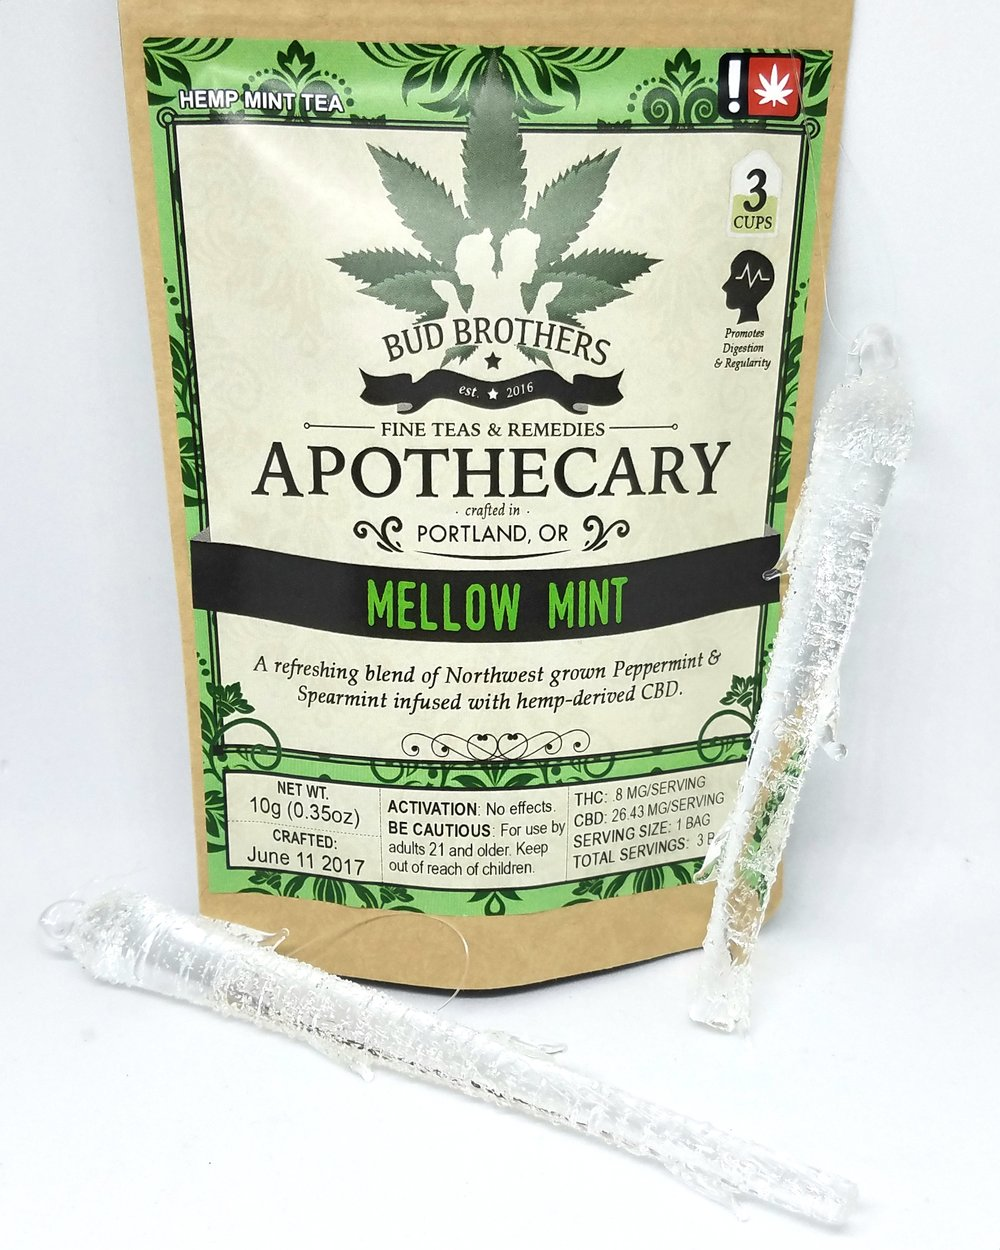 Mellow Mint CBD Tea made by Bud Brothers Apothecary